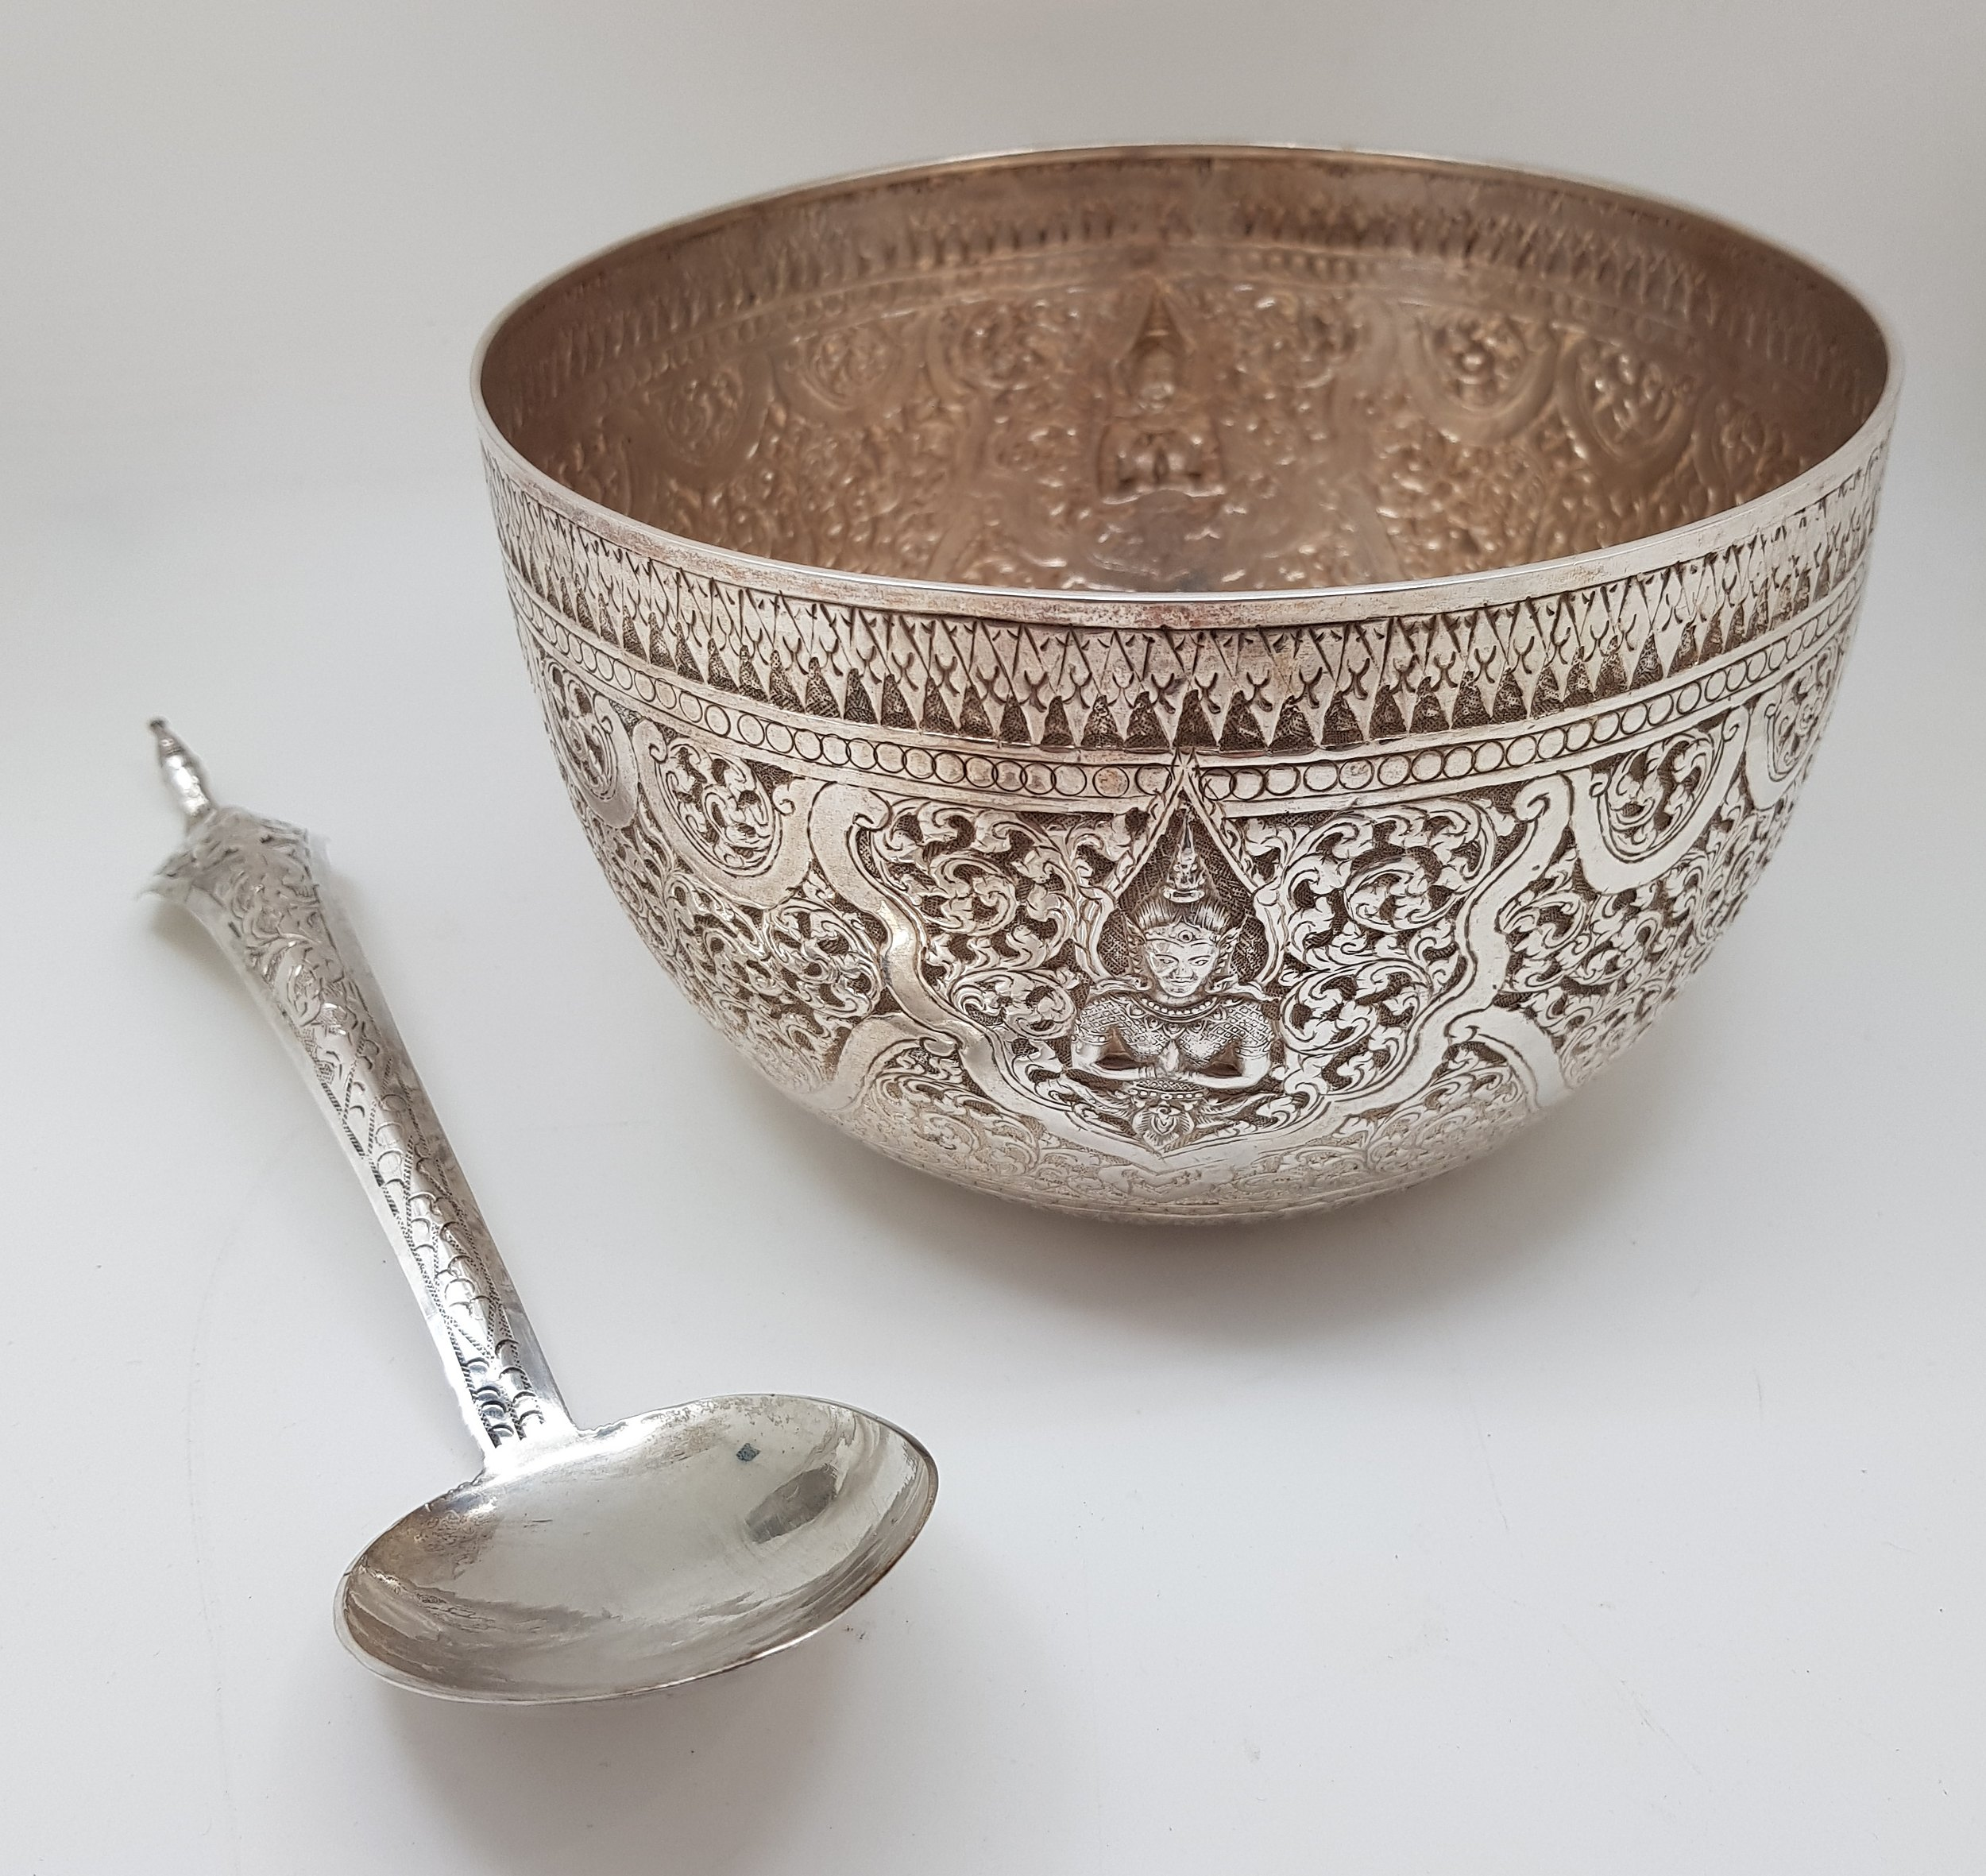 'Thai Sterling Silver Bowl Made by Chinese Silversmiths, Probably Bangkok'